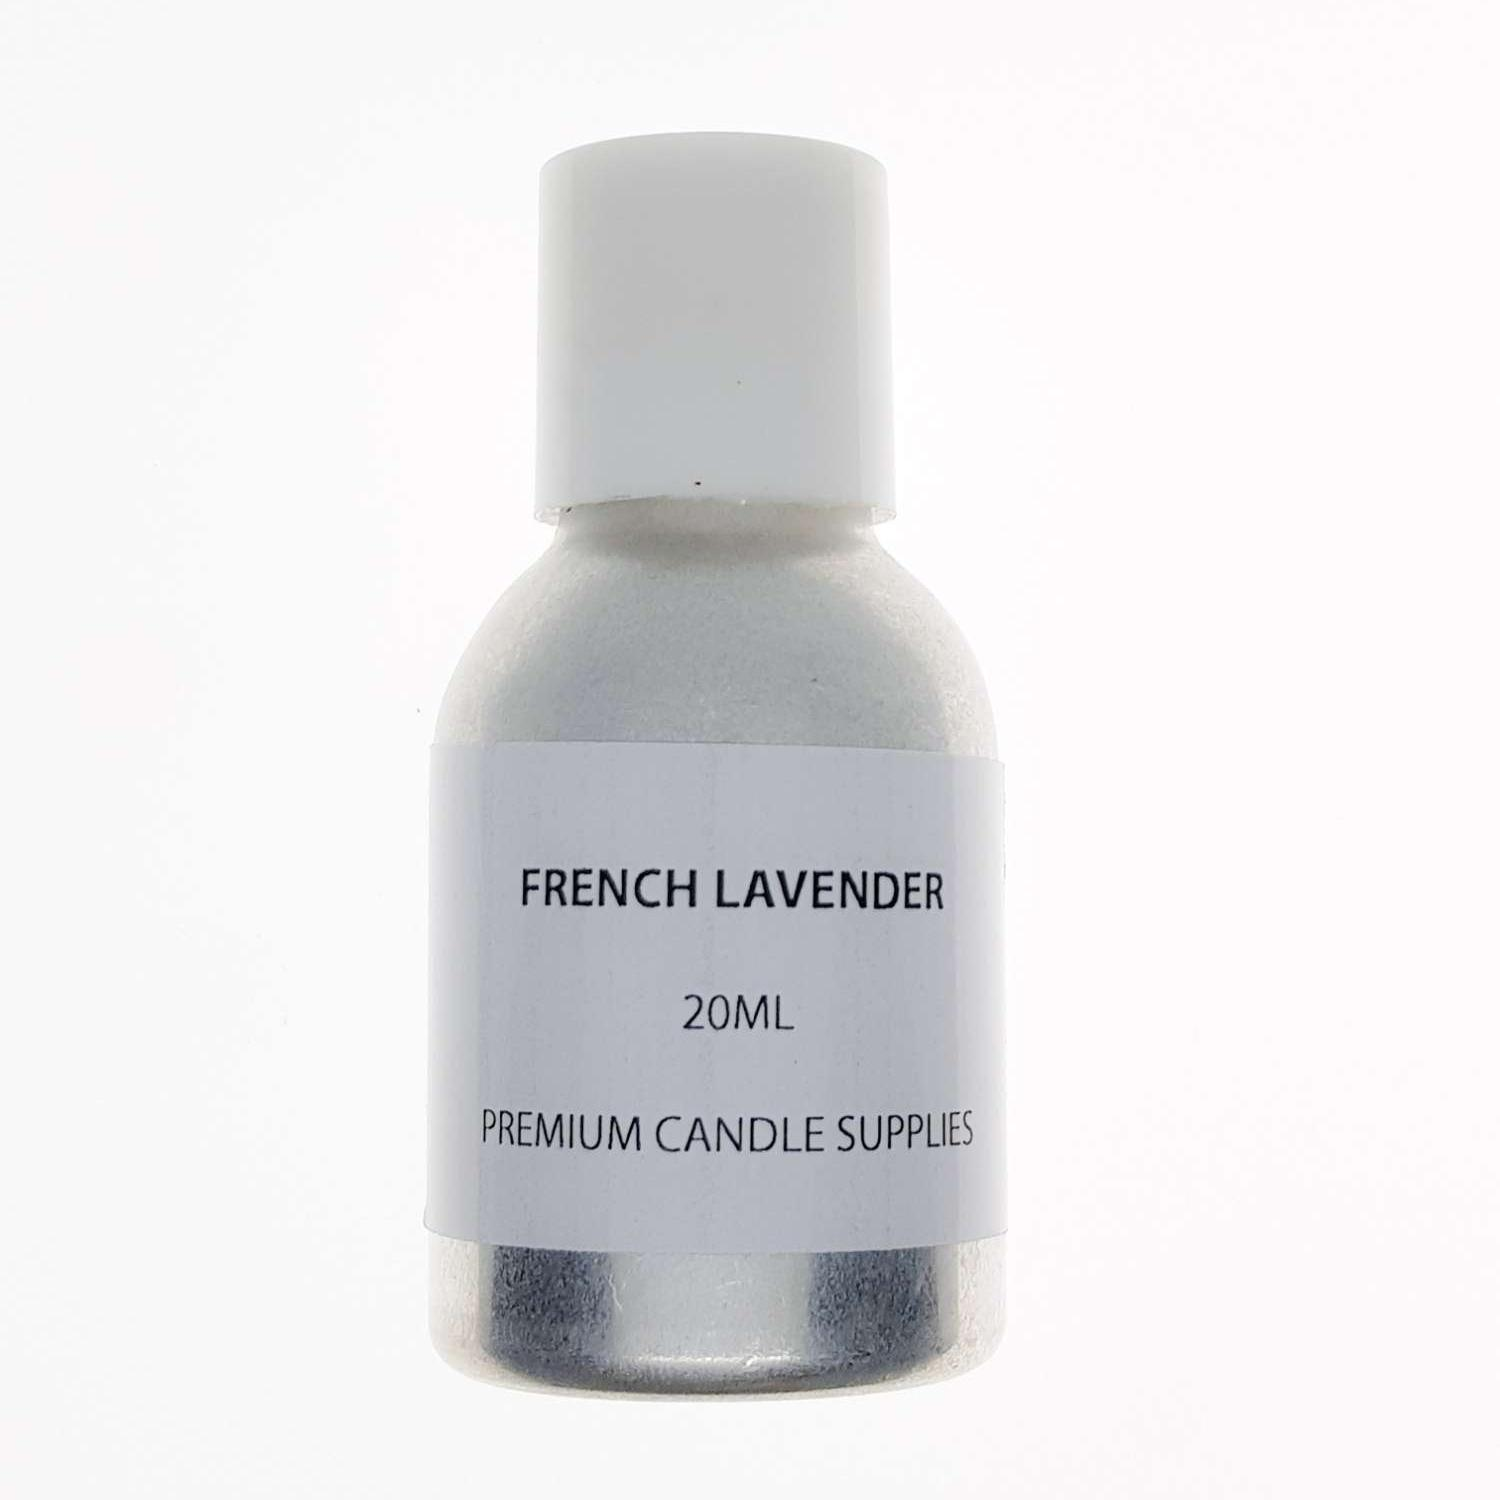 FRENCH LAVENDER 20ML - Candle Fragrance Oil - Home Diffuser Fragrance Oil